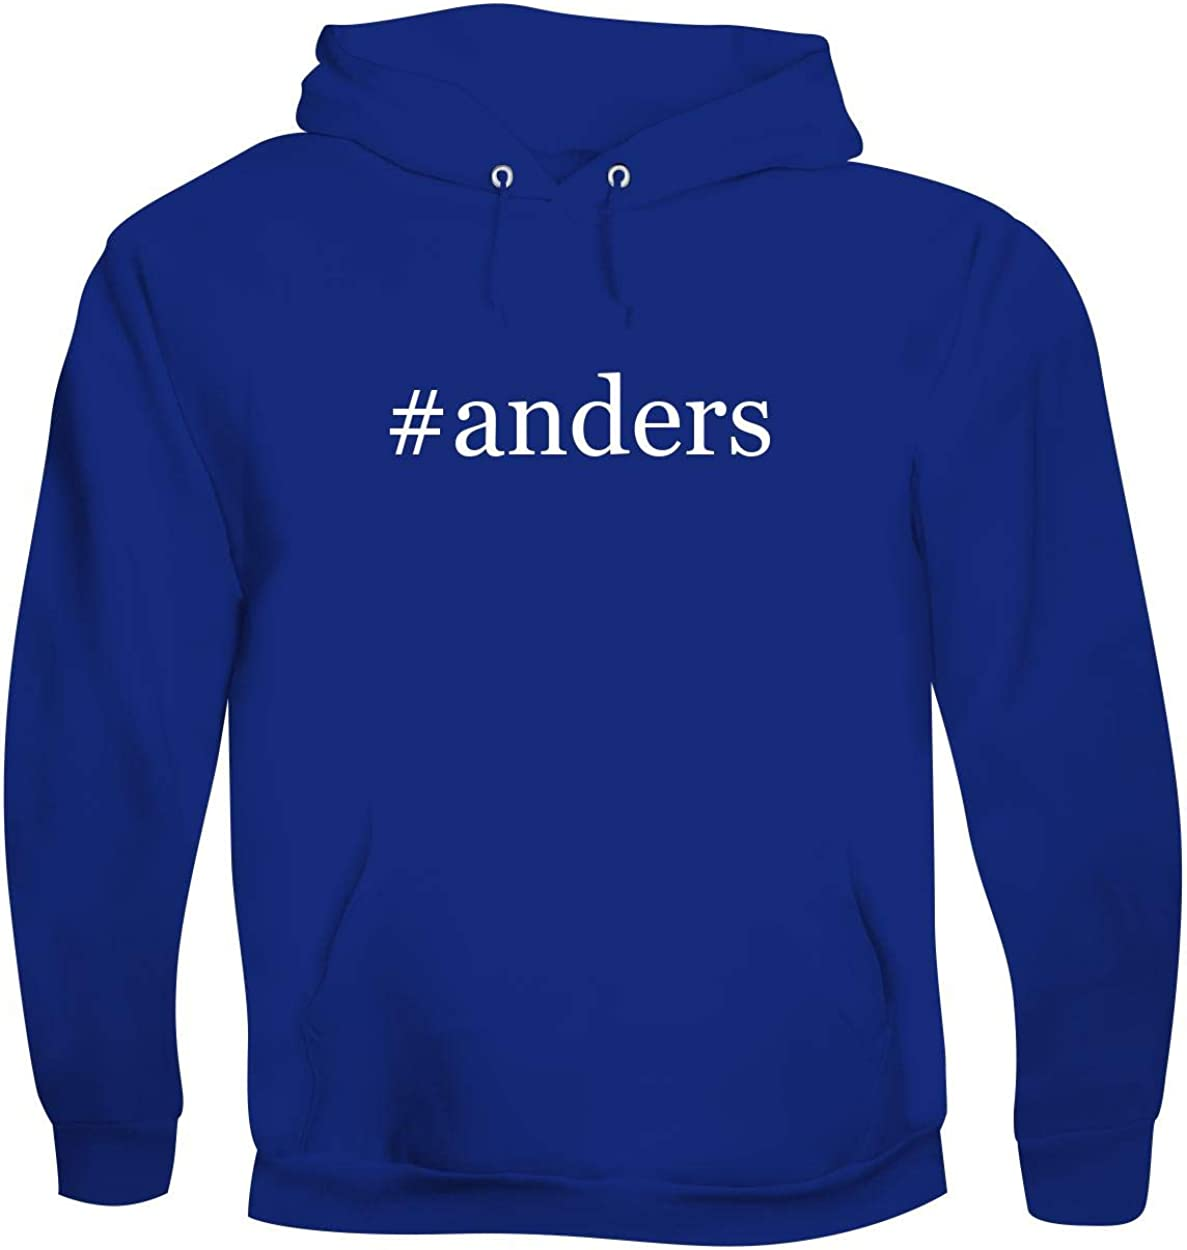 #Anders - Men'S Hashtag Soft & Comfortable Hoodie Sweatshirt Pullover